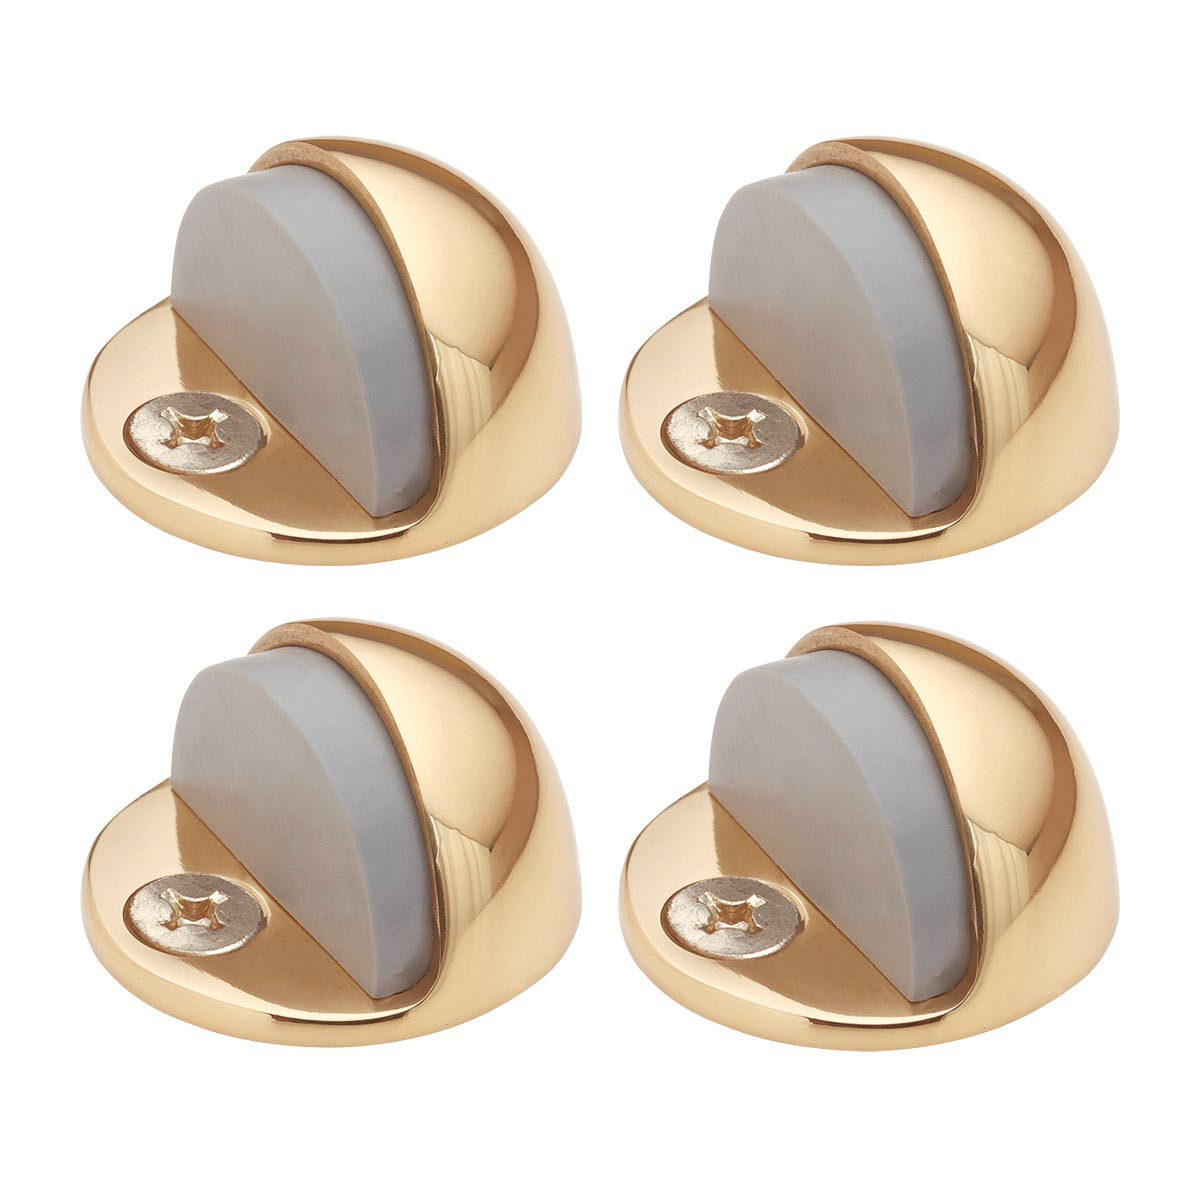 4 Brass Door Stop Dome Floor Mount Bumper | Renovator's Supply